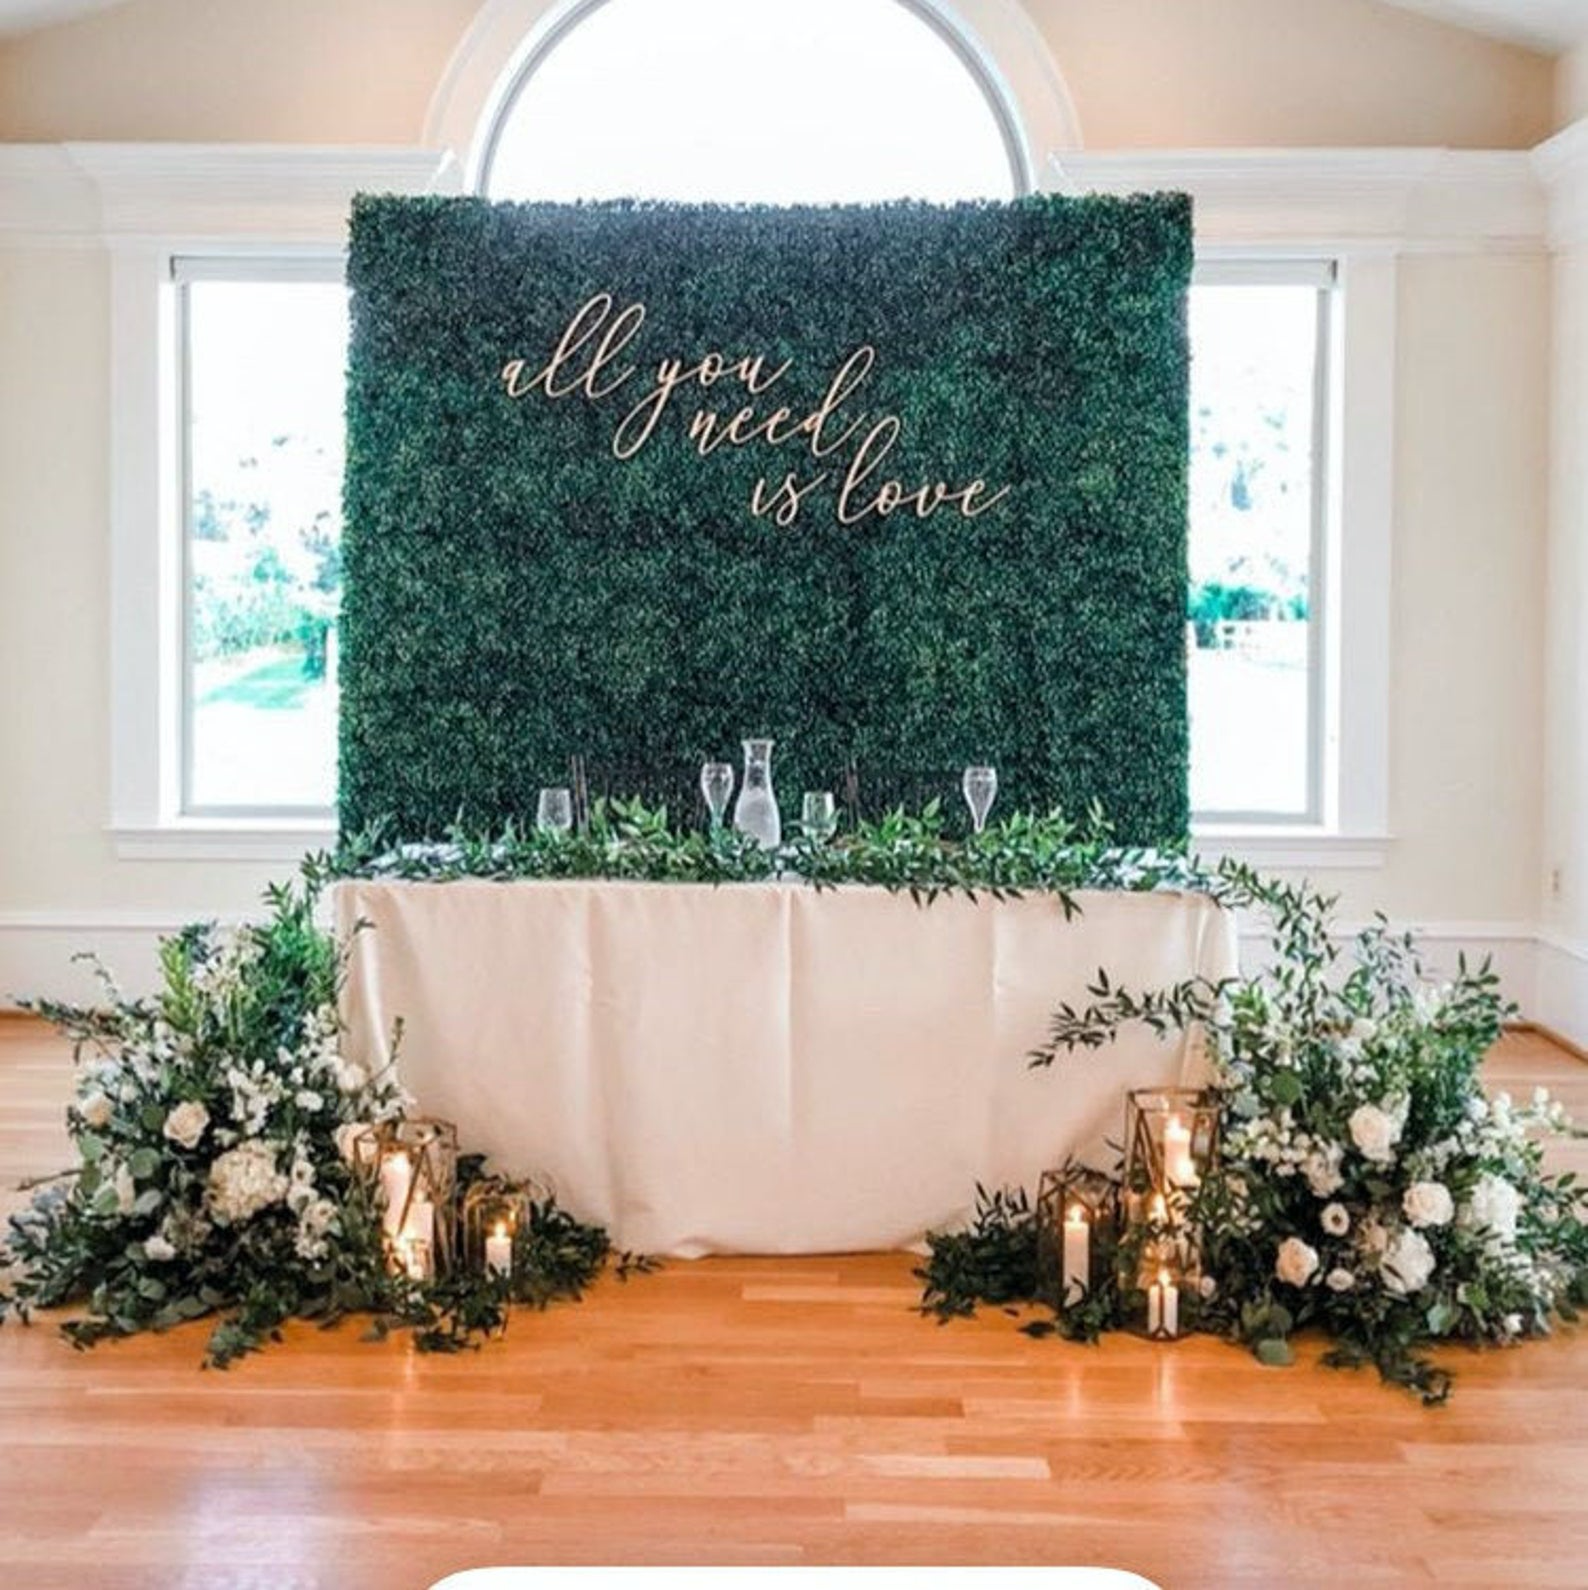 All You Need Is Love Wood Wedding Decor Large Wedding Signs Wedding Backdrop Wedding Quote Large Wedding Signs Wedding Wall Decorations Wedding Decorations